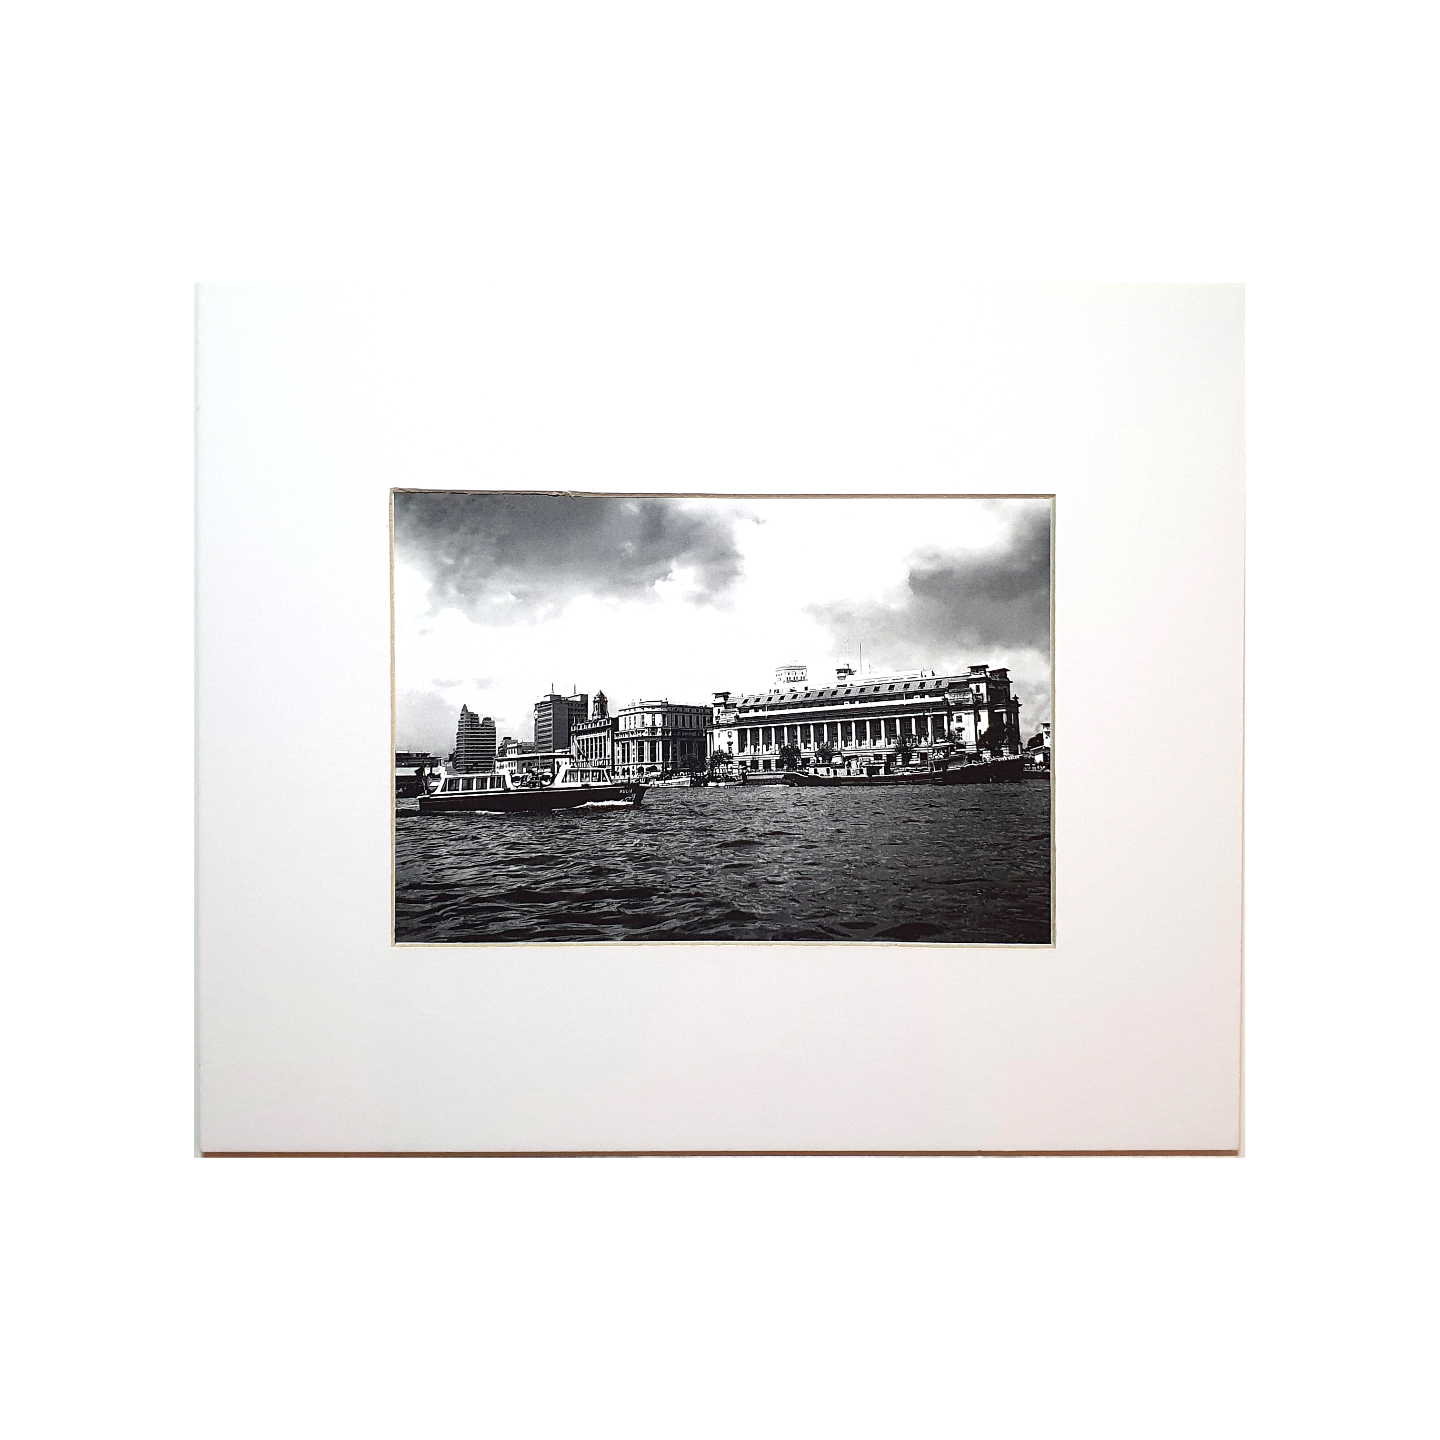 Photo Print: Fullerton Building & Seafront by Yip Cheong Fun